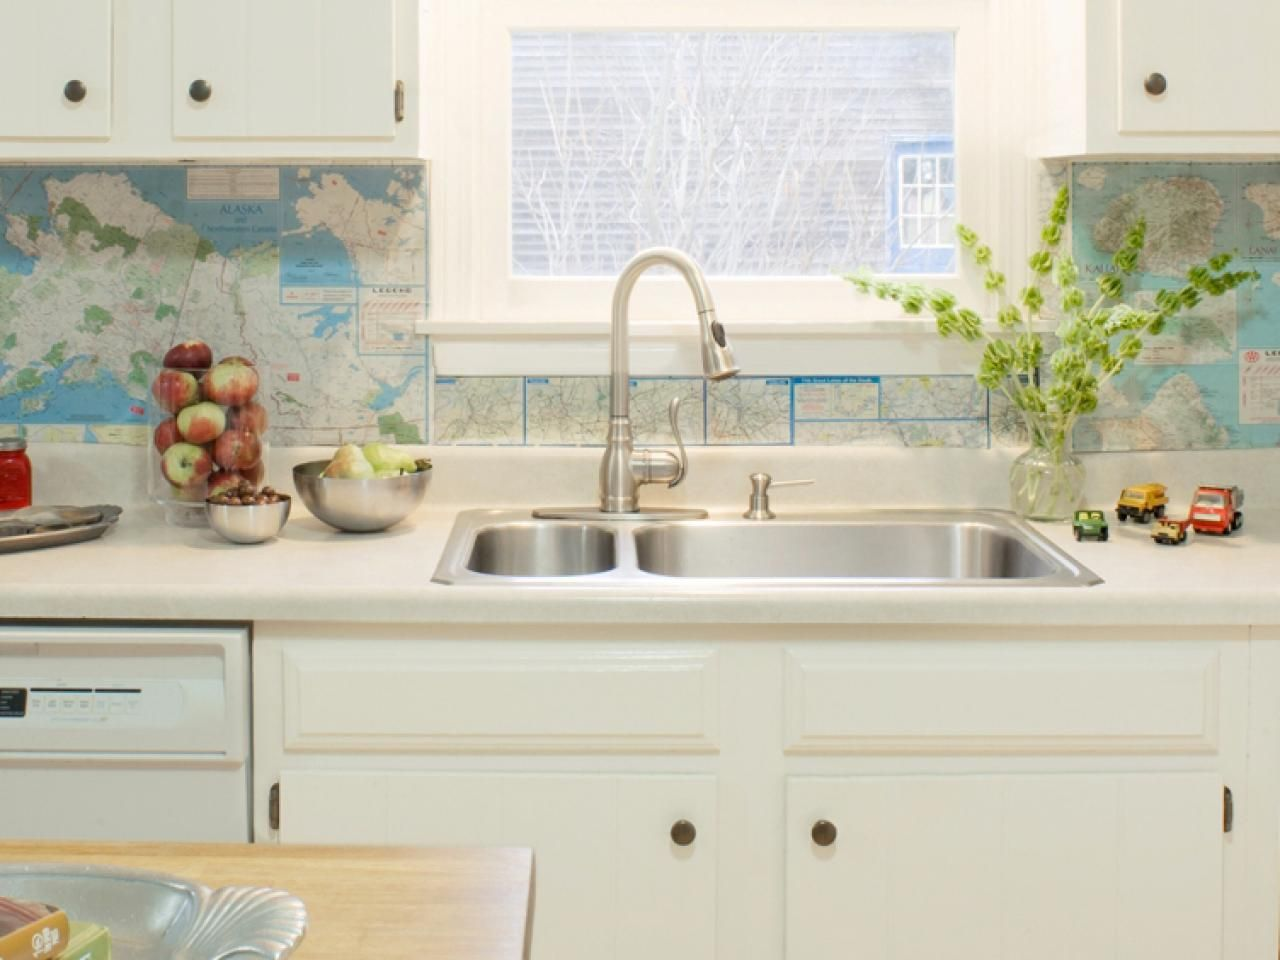 title | Diy Bathroom Backsplash Ideas